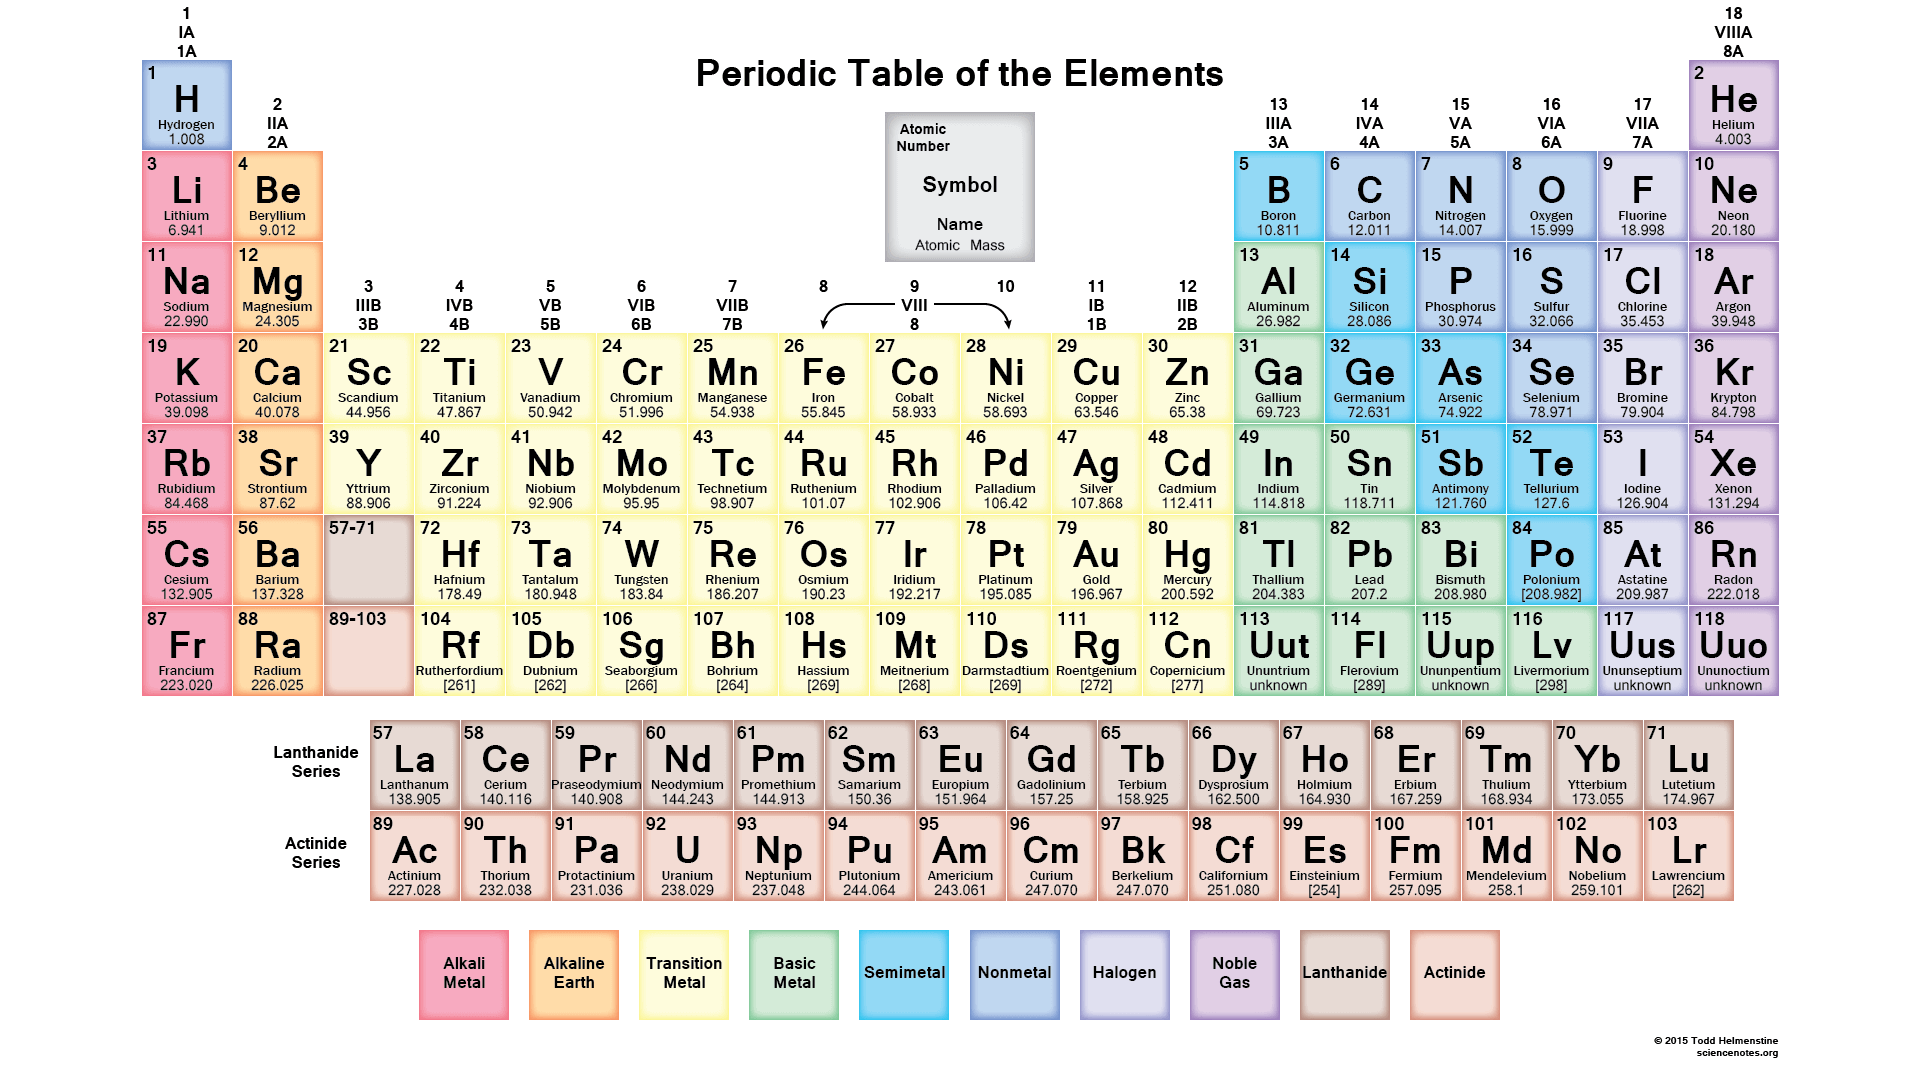 PeriodicTableMuted.png